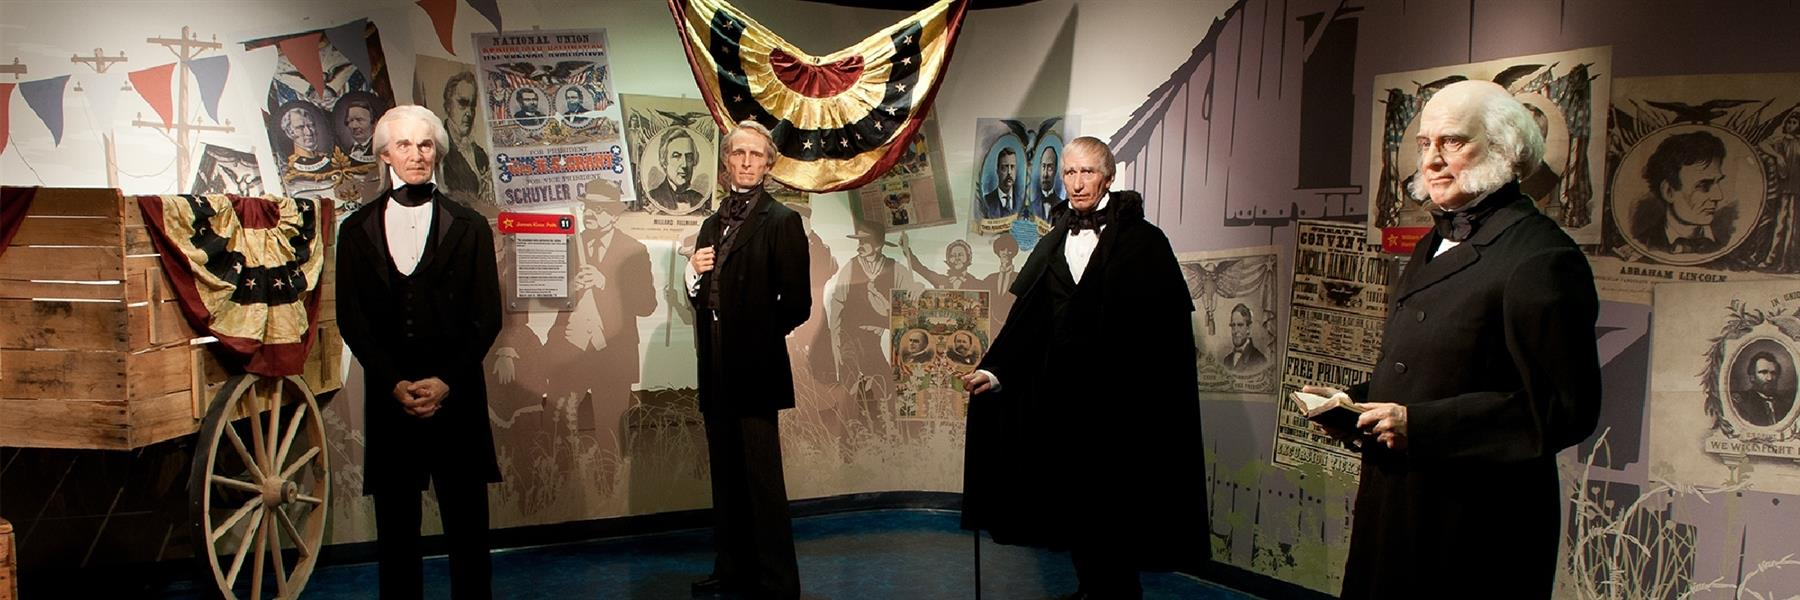 Madame Tussauds Washington DC in Washington, District of Columbia